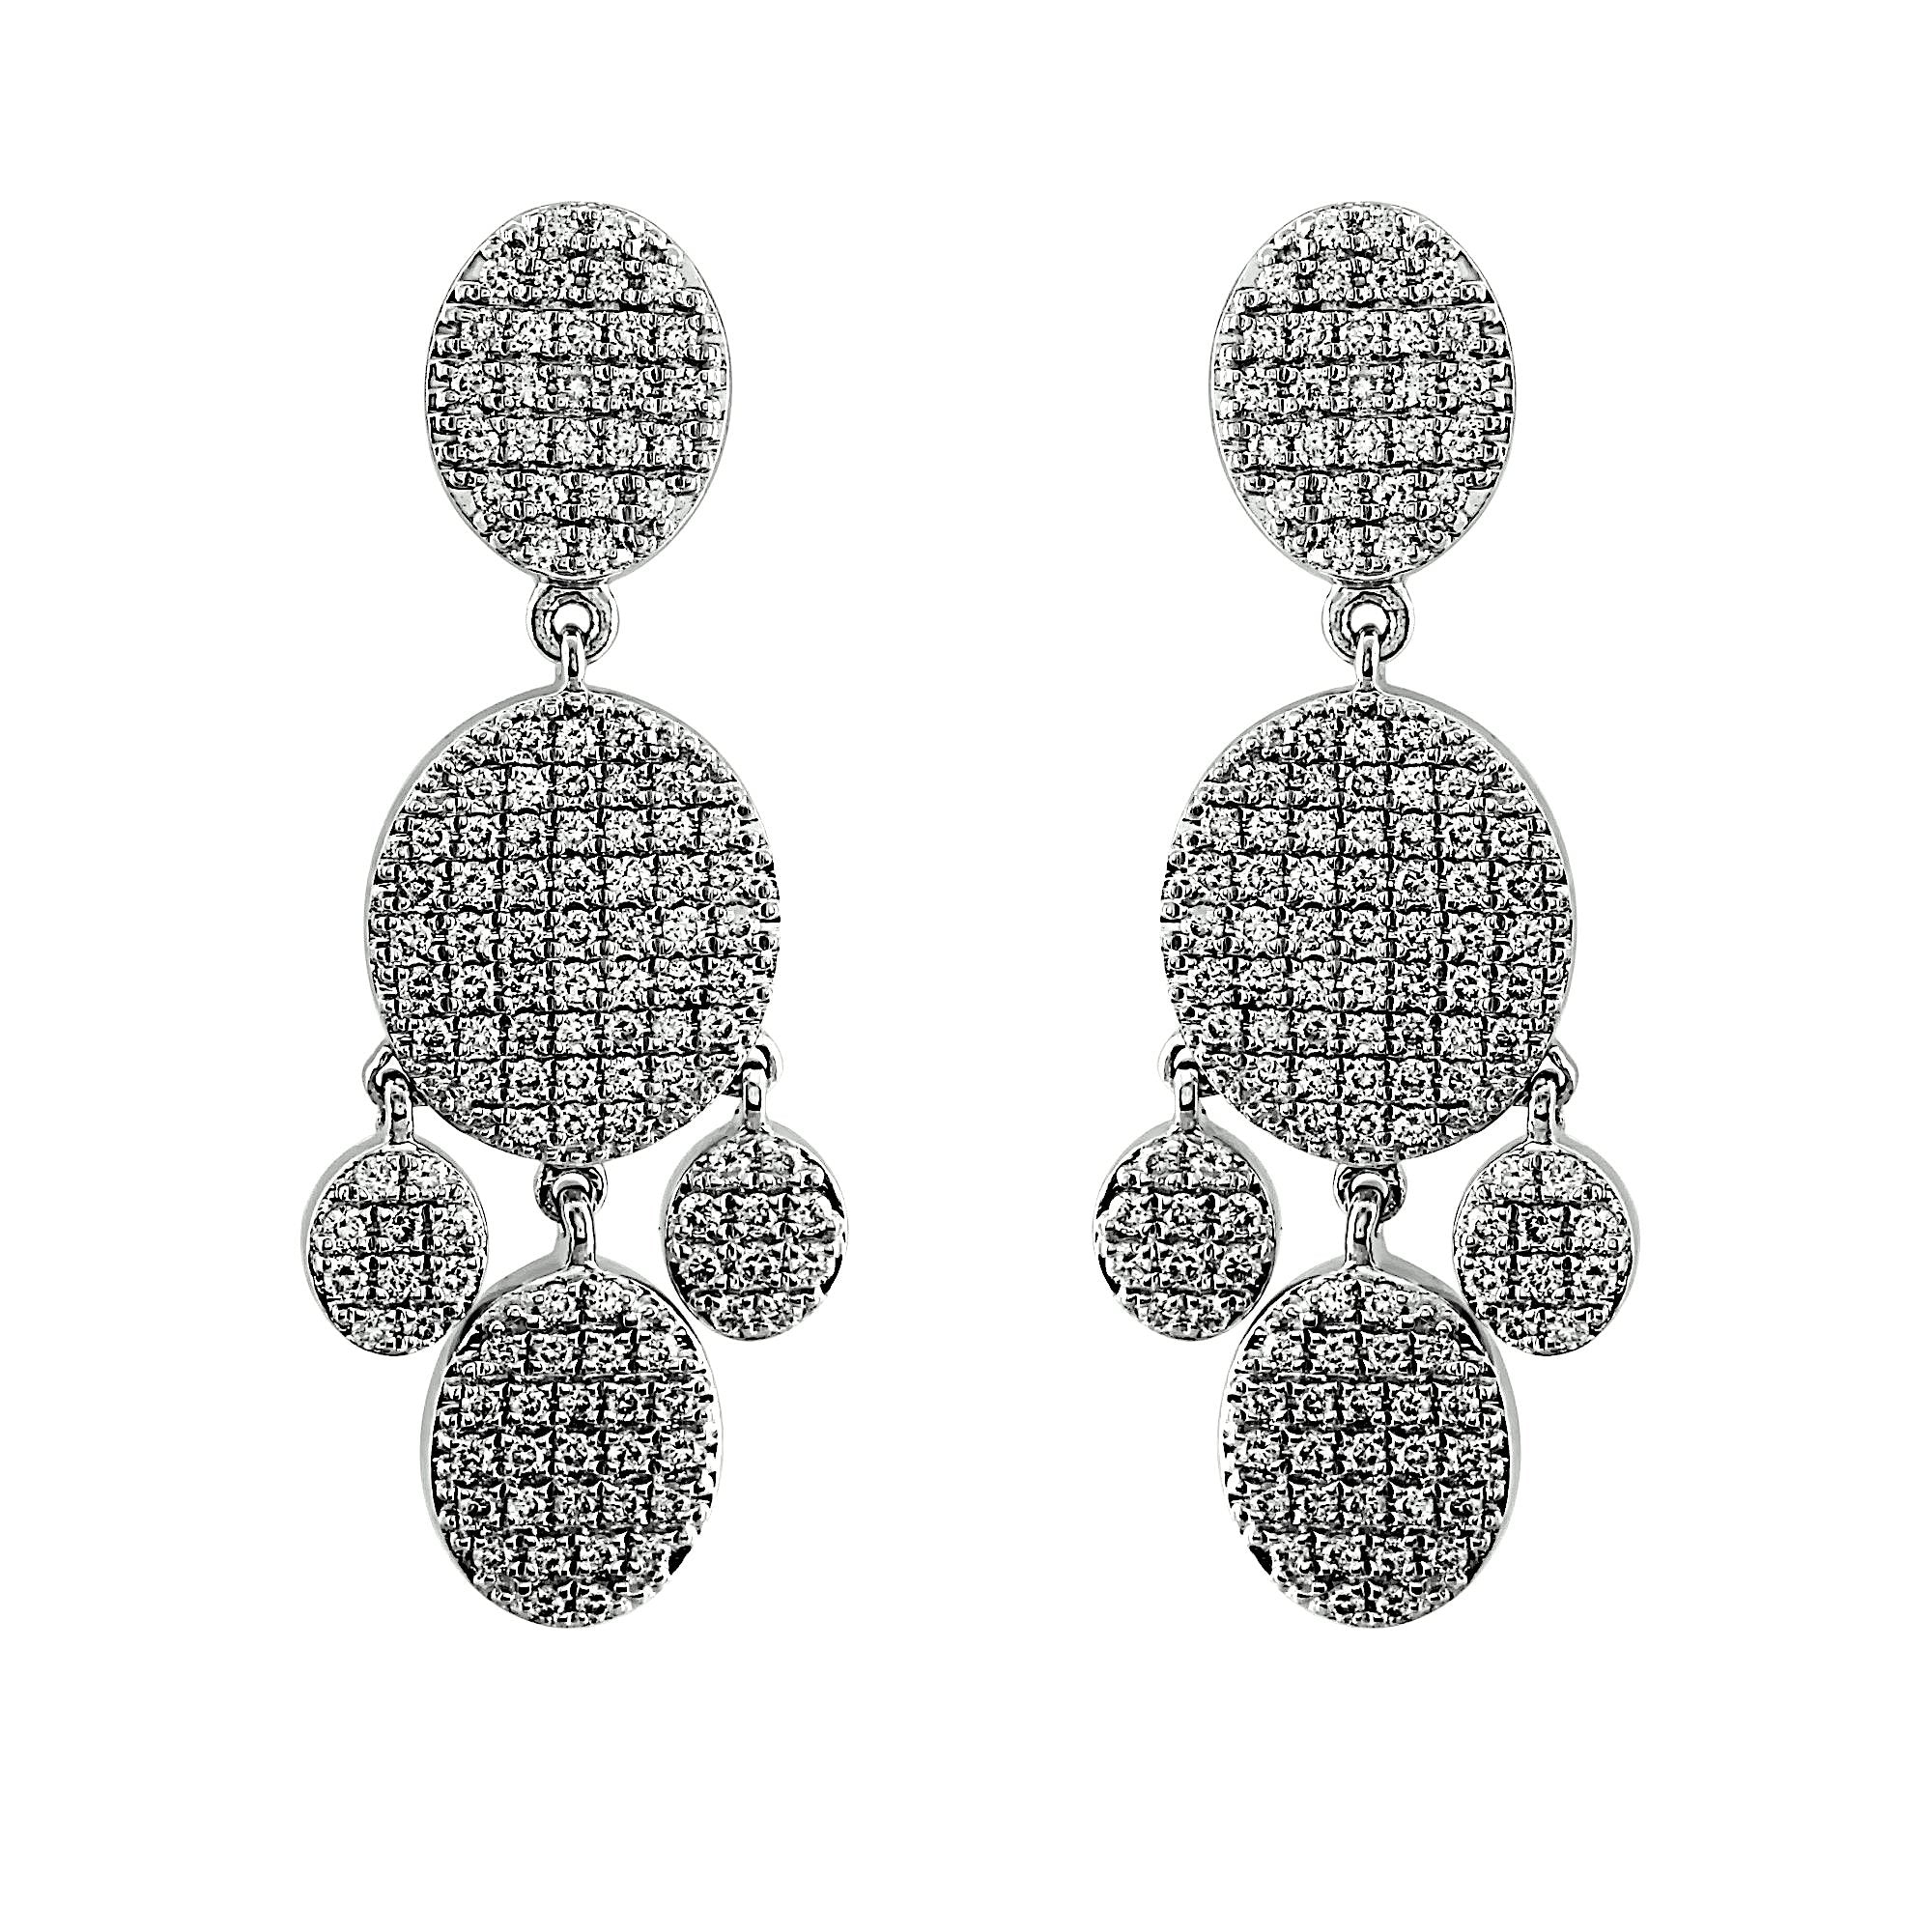 Blaze Lab-Grown Diamond Chandelier Earrings - Sterling (1.79 ct. tw.)